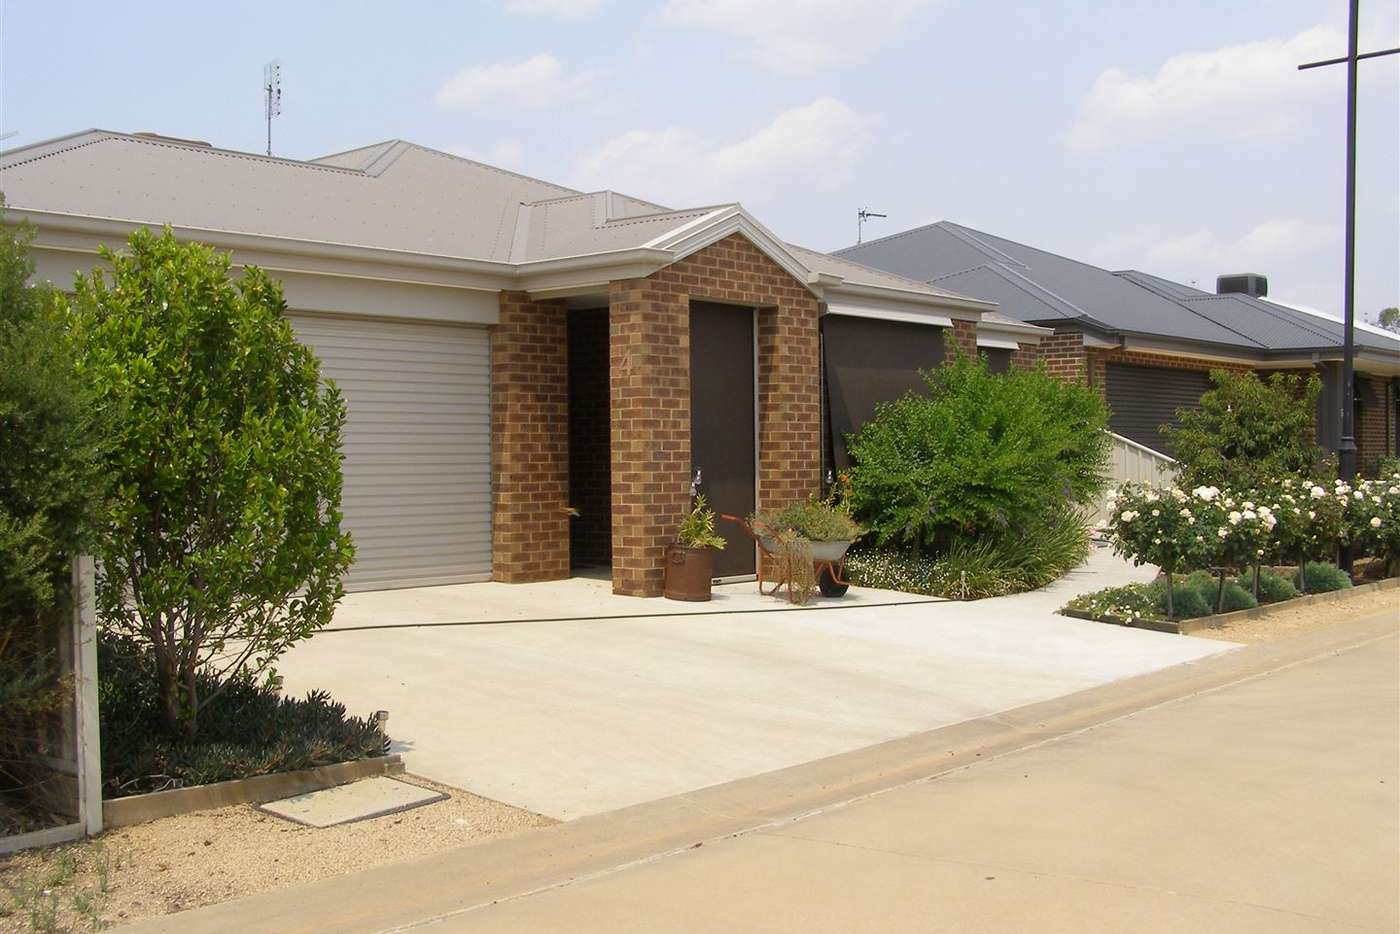 Main view of Homely house listing, 4 Gardner Crt, Moama NSW 2731